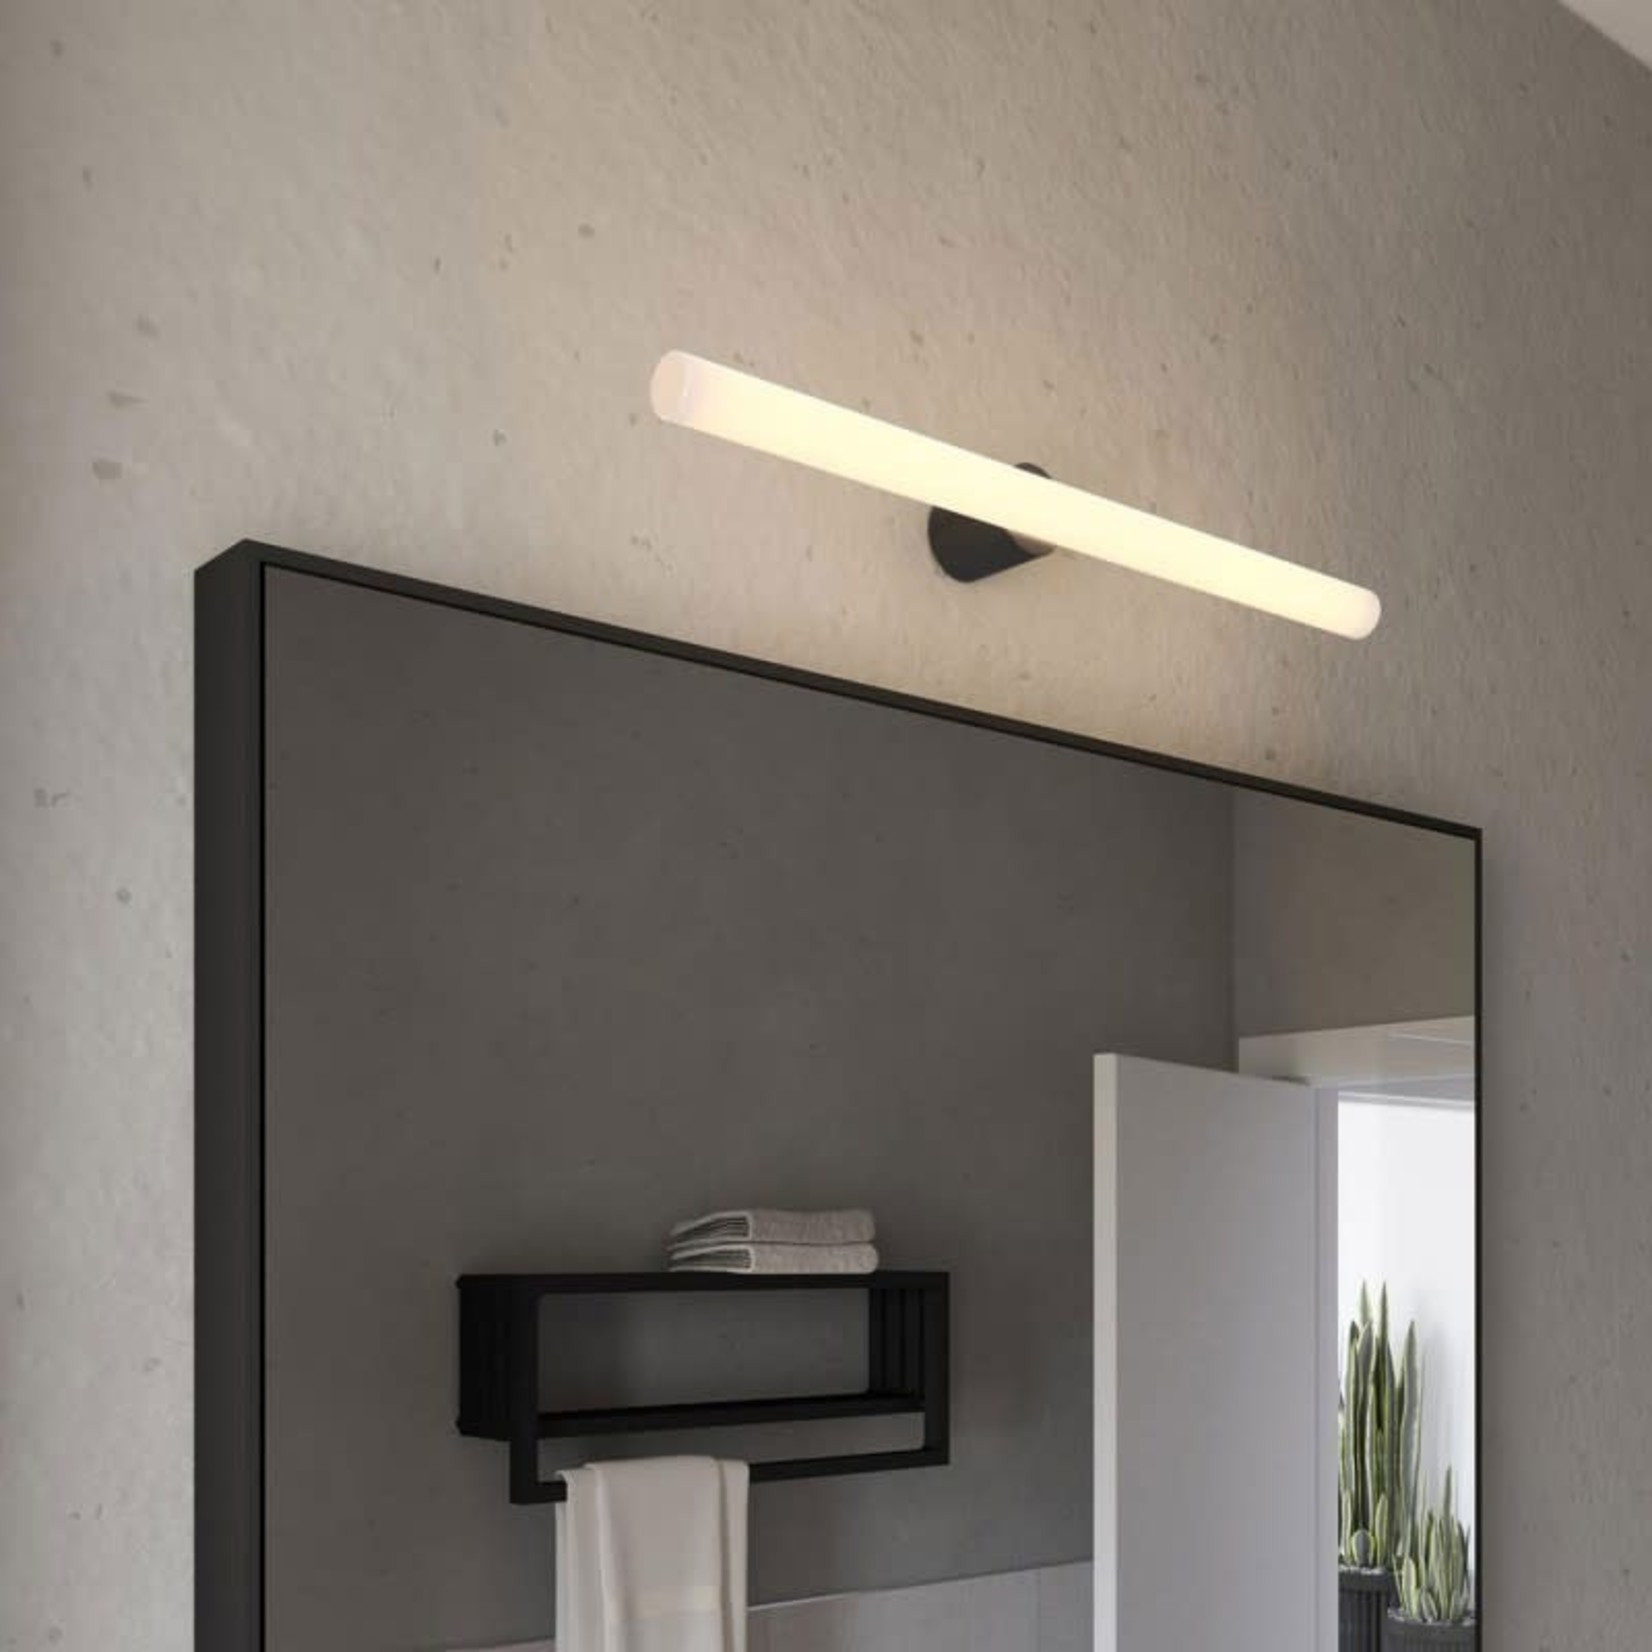 CCIT Esse14 wall or ceiling lamp holder with S14d fitting - Waterproof IP44 - Finish Black